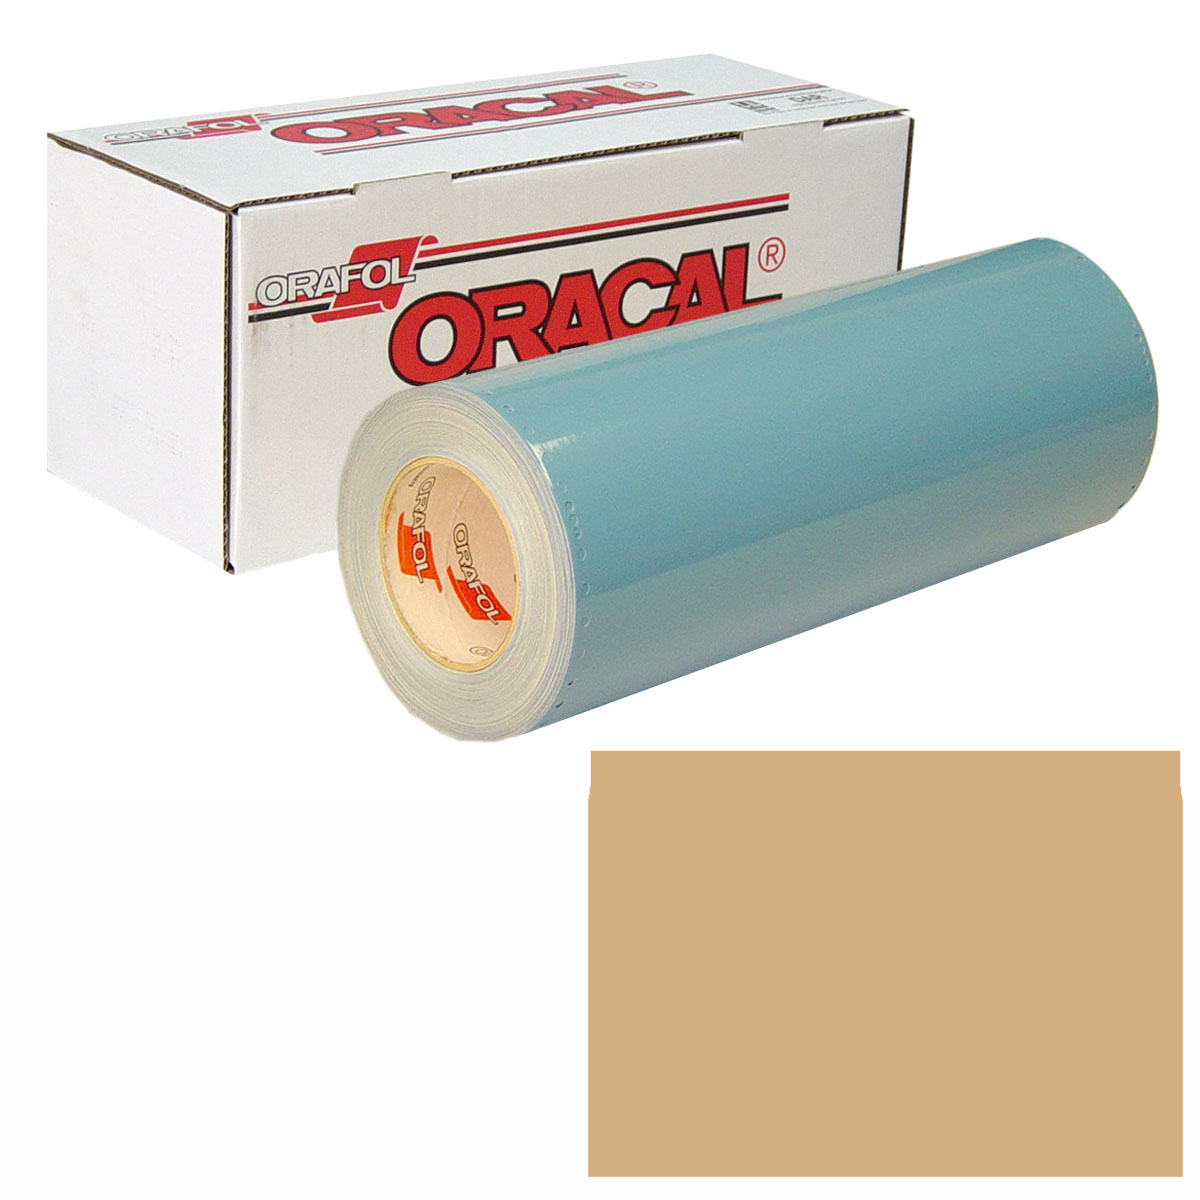 ORACAL 751 15In X 10Yd 081 Light Brown